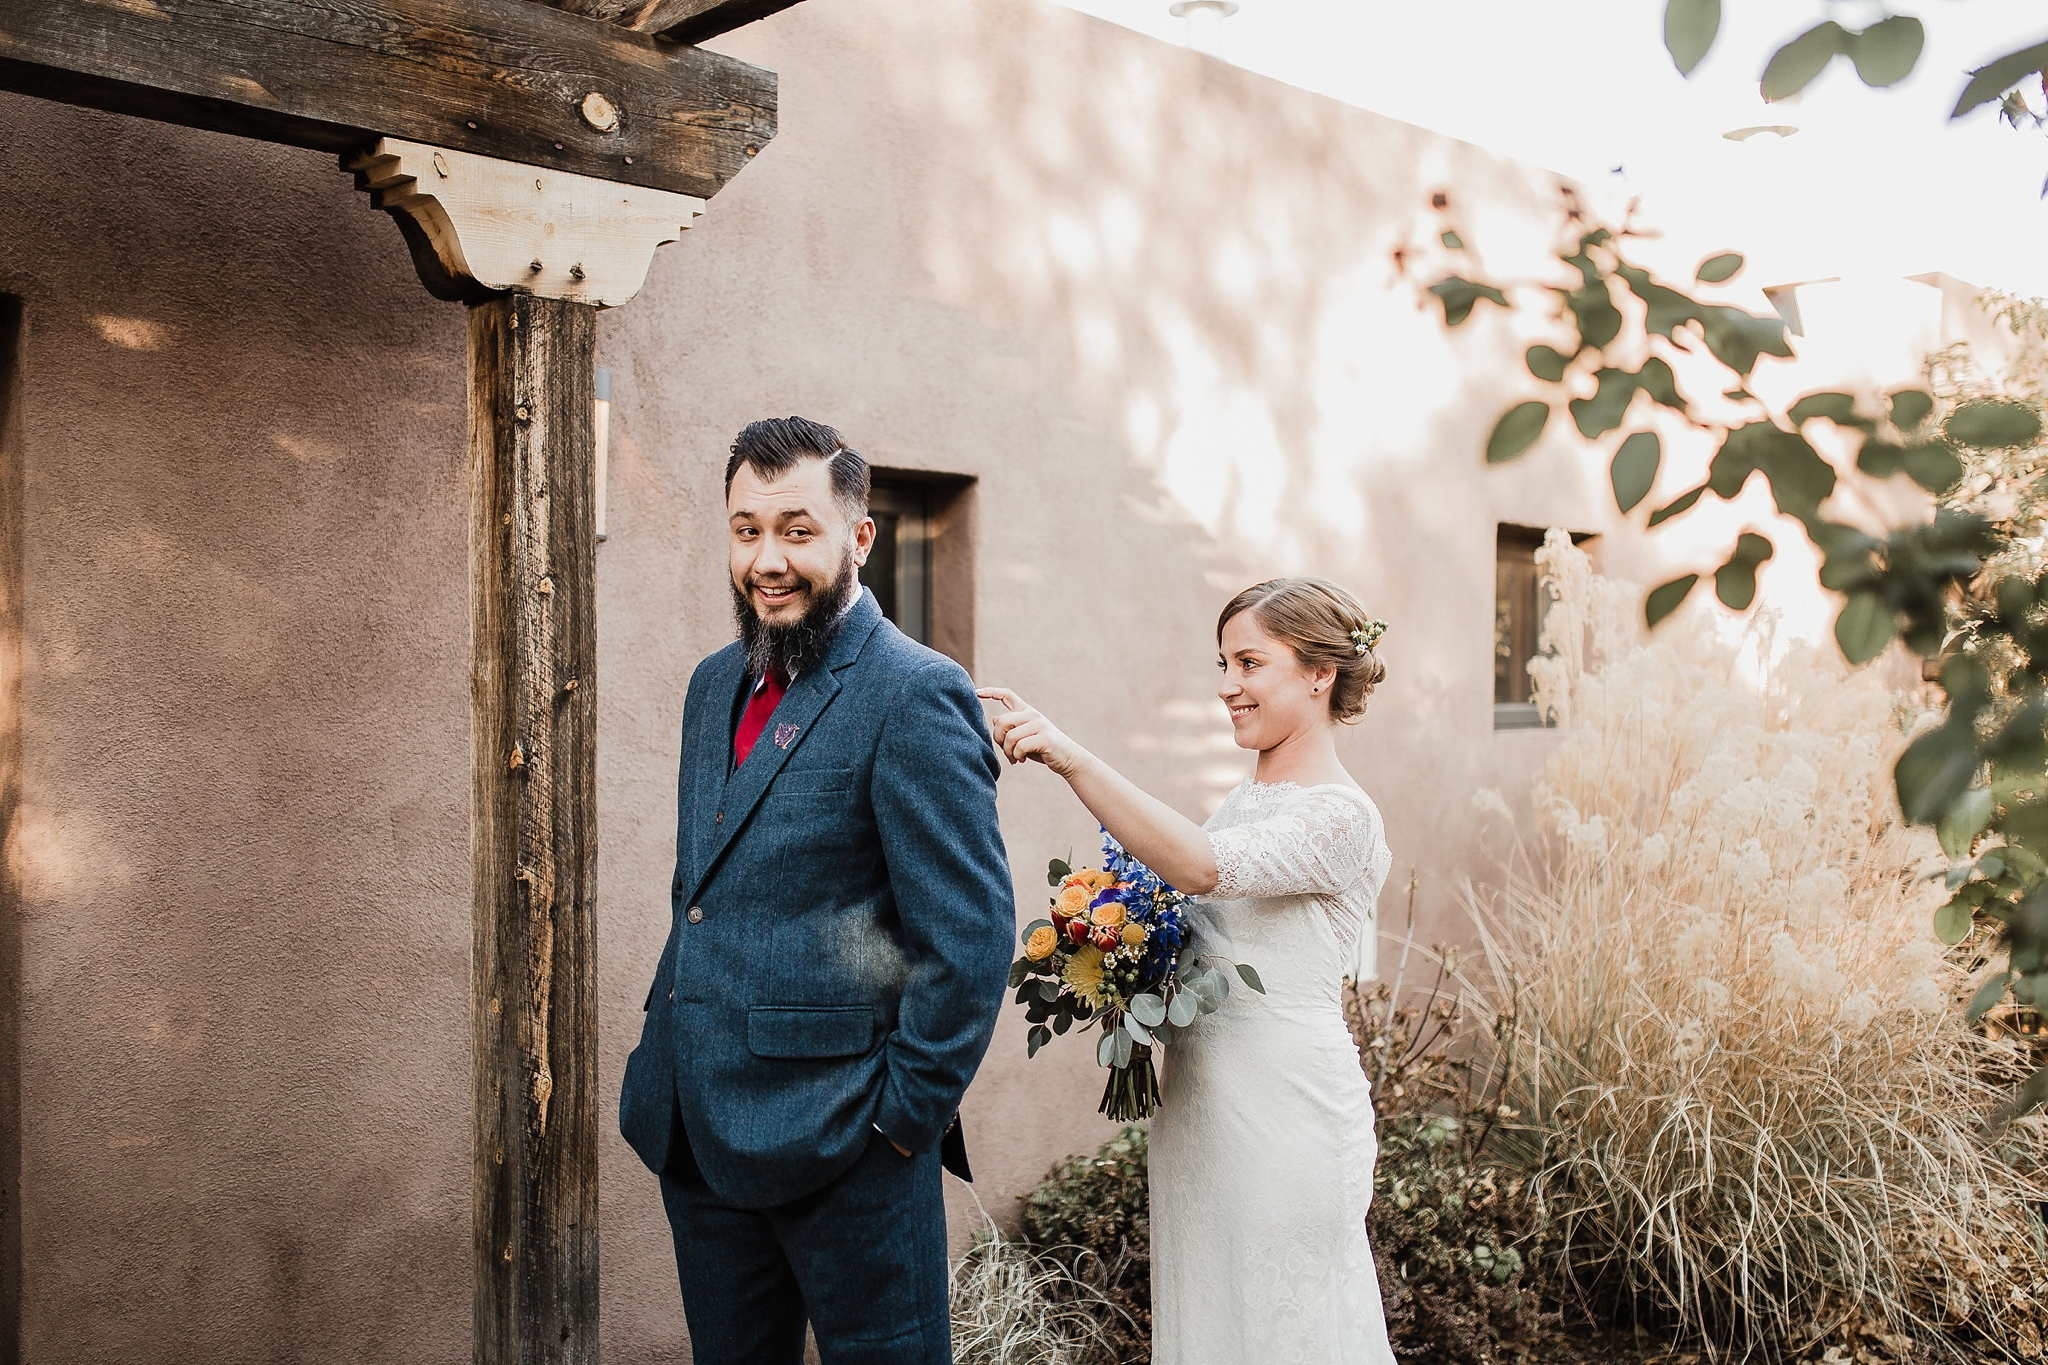 Alicia+lucia+photography+-+albuquerque+wedding+photographer+-+santa+fe+wedding+photography+-+new+mexico+wedding+photographer+-+albuquerque+wedding+-+sarabande+bed+breakfast+-+bed+and+breakfast+wedding_0024.jpg